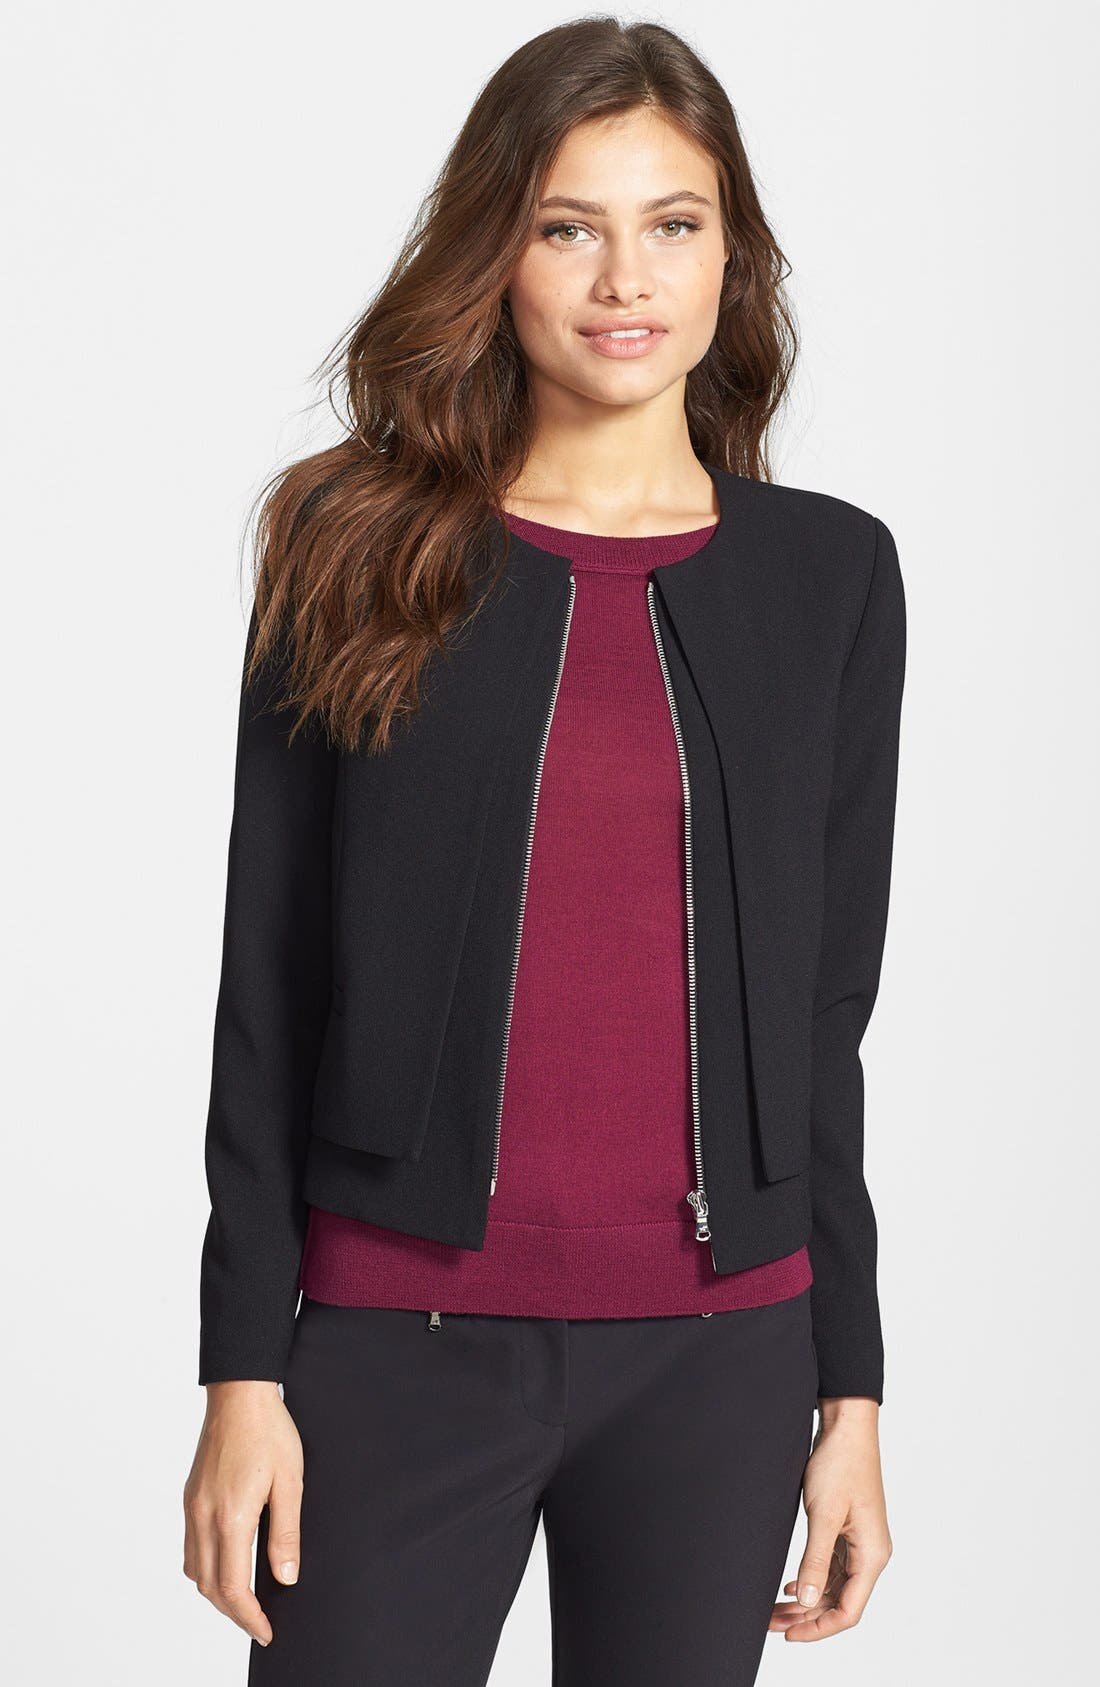 Main Image - Kenneth Cole New York 'Peggy' Layered Front Zip Jacket (Petite)